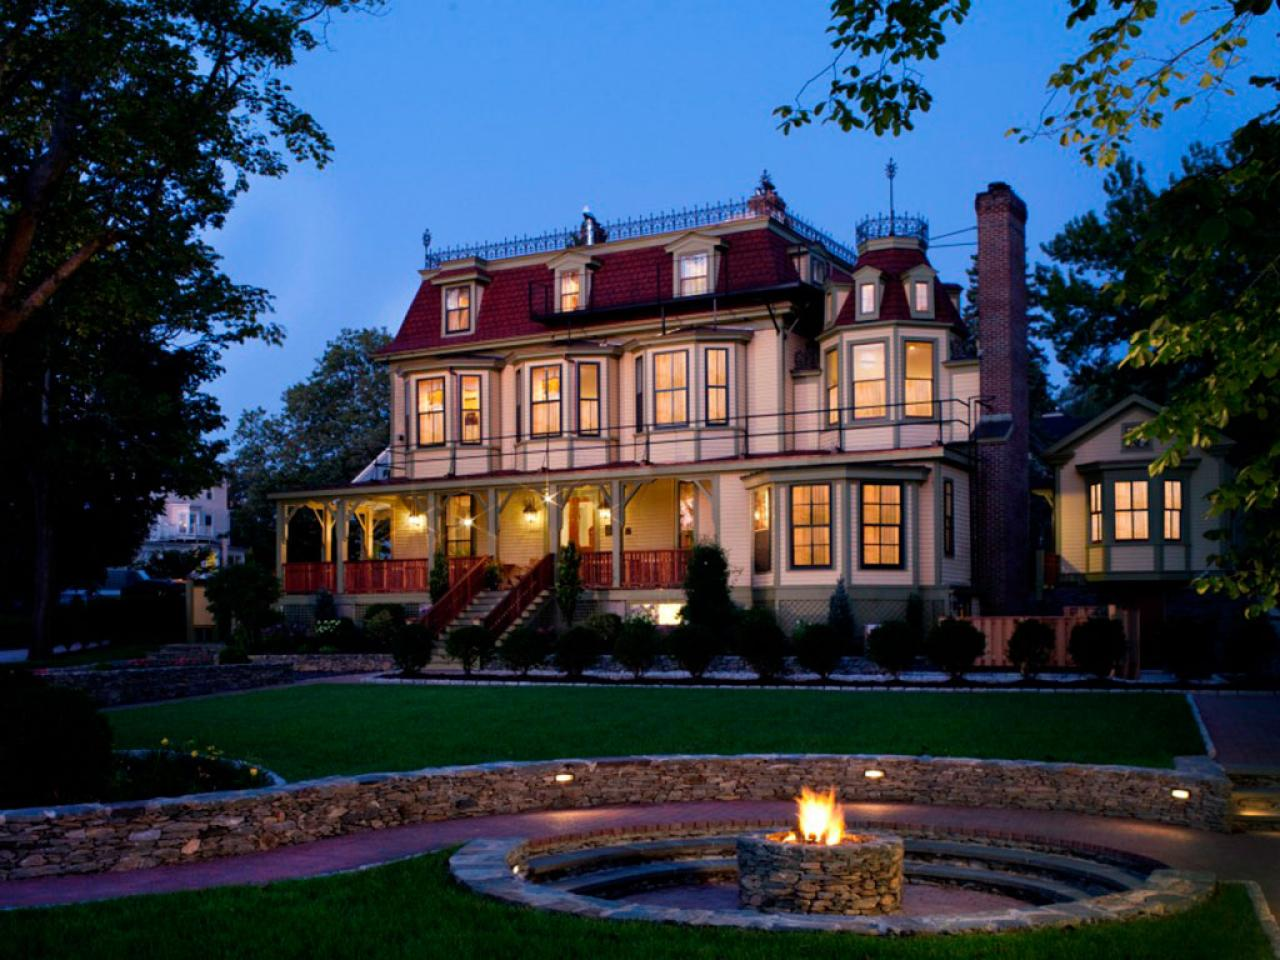 Top 10 New England Bed and Breakfasts | Travel Channel